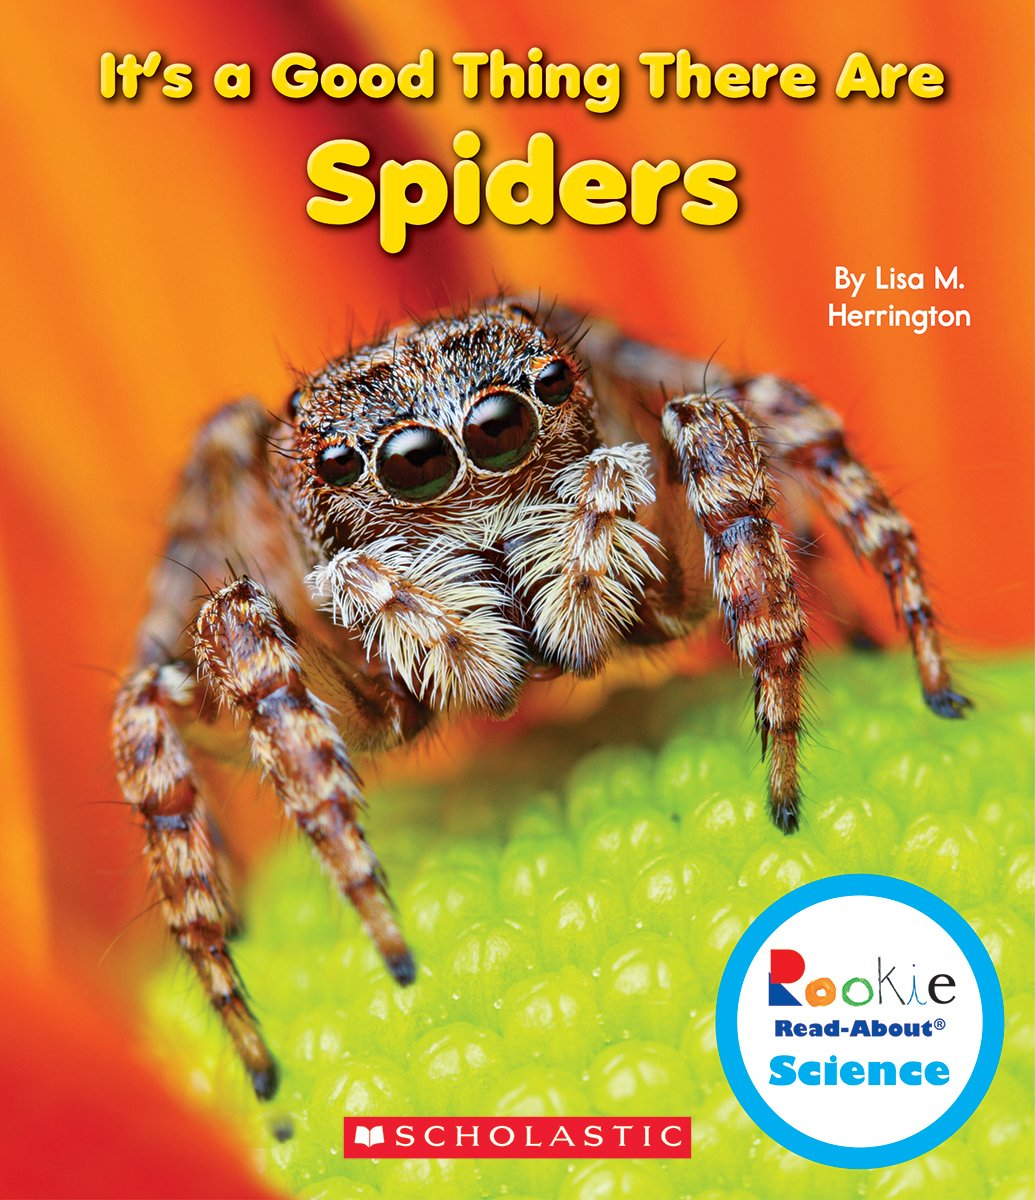 Amazon.com: It's a Good Thing There Are Spiders (Rookie Read-About Science)  (9780531223604): Lisa M Herrington, Elizabeth Case DeSantis, Jeanne Clidas:  ...